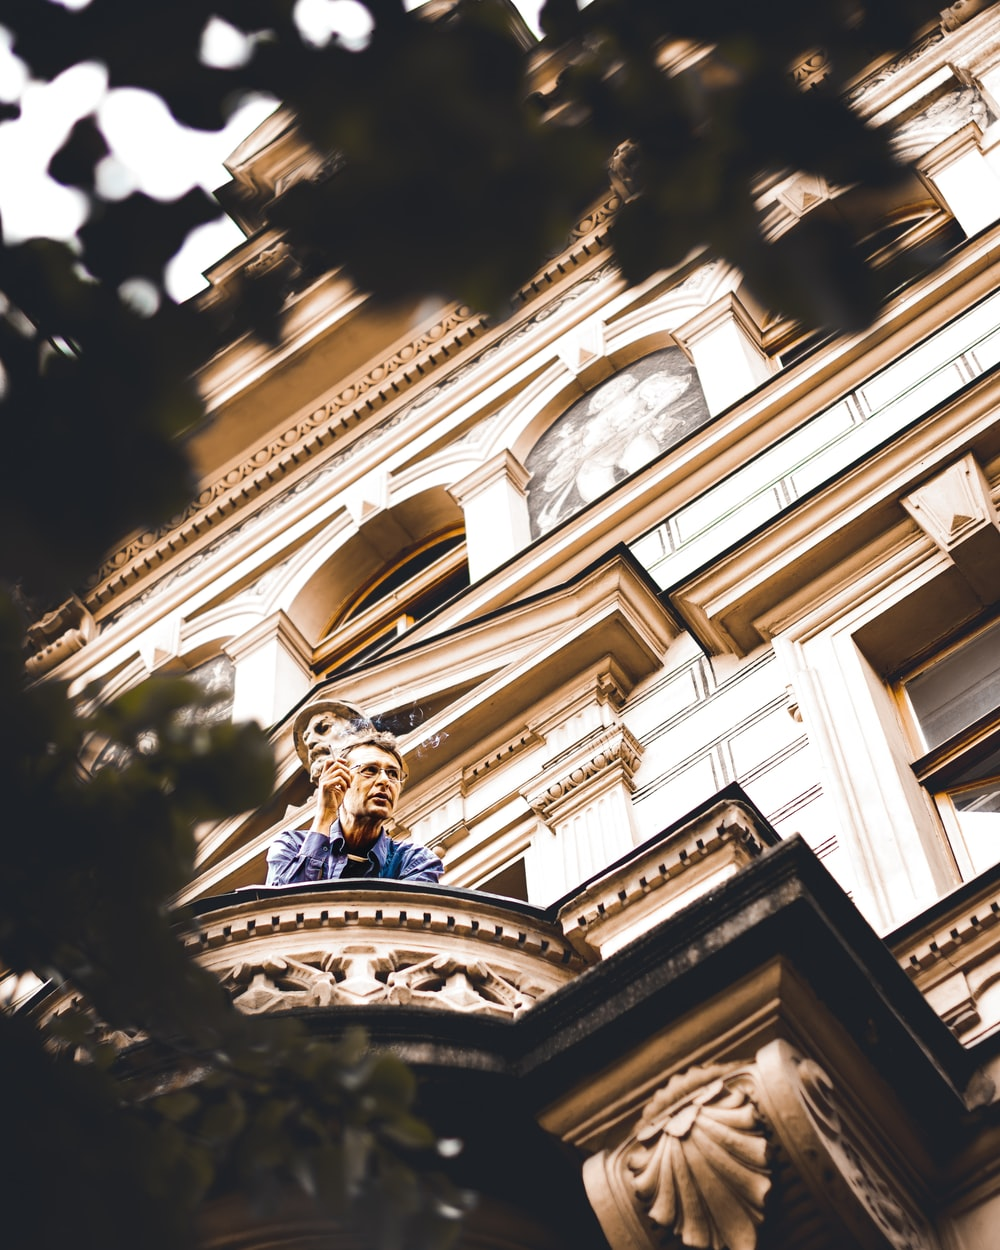 low angle photography of man leaning on balcony